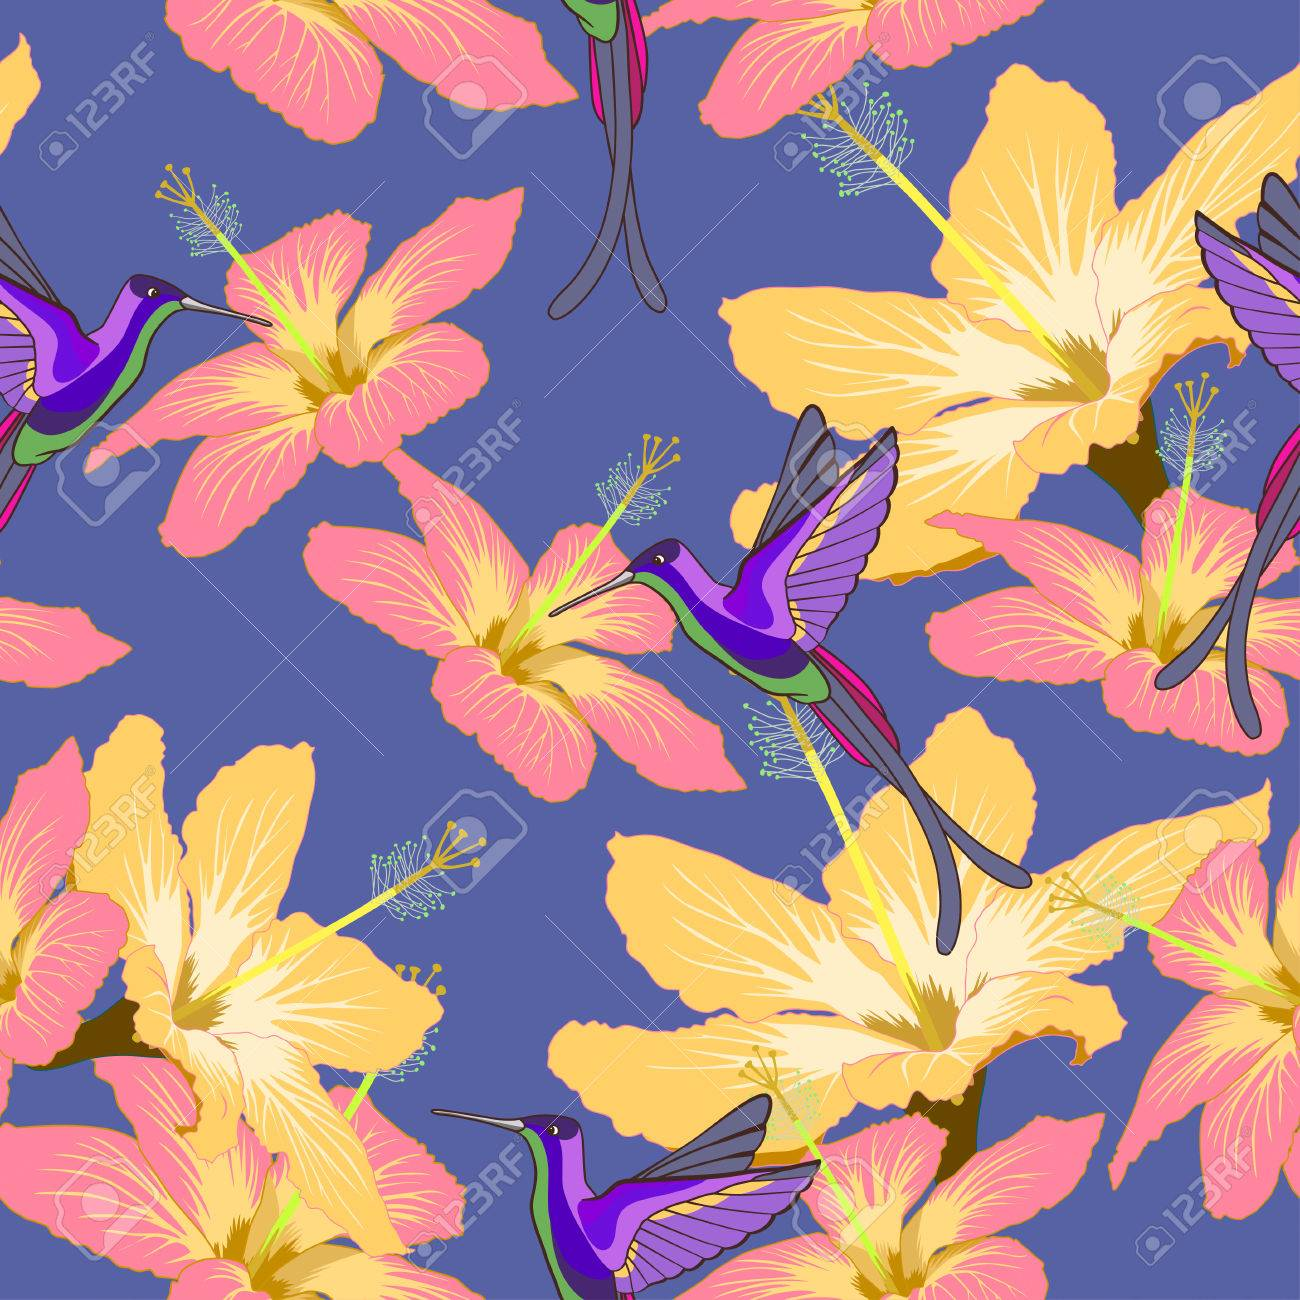 Seamless Pattern With Hibiscus Flowers And Hummingbird On Blue Background Can Be Used For Wallpaper